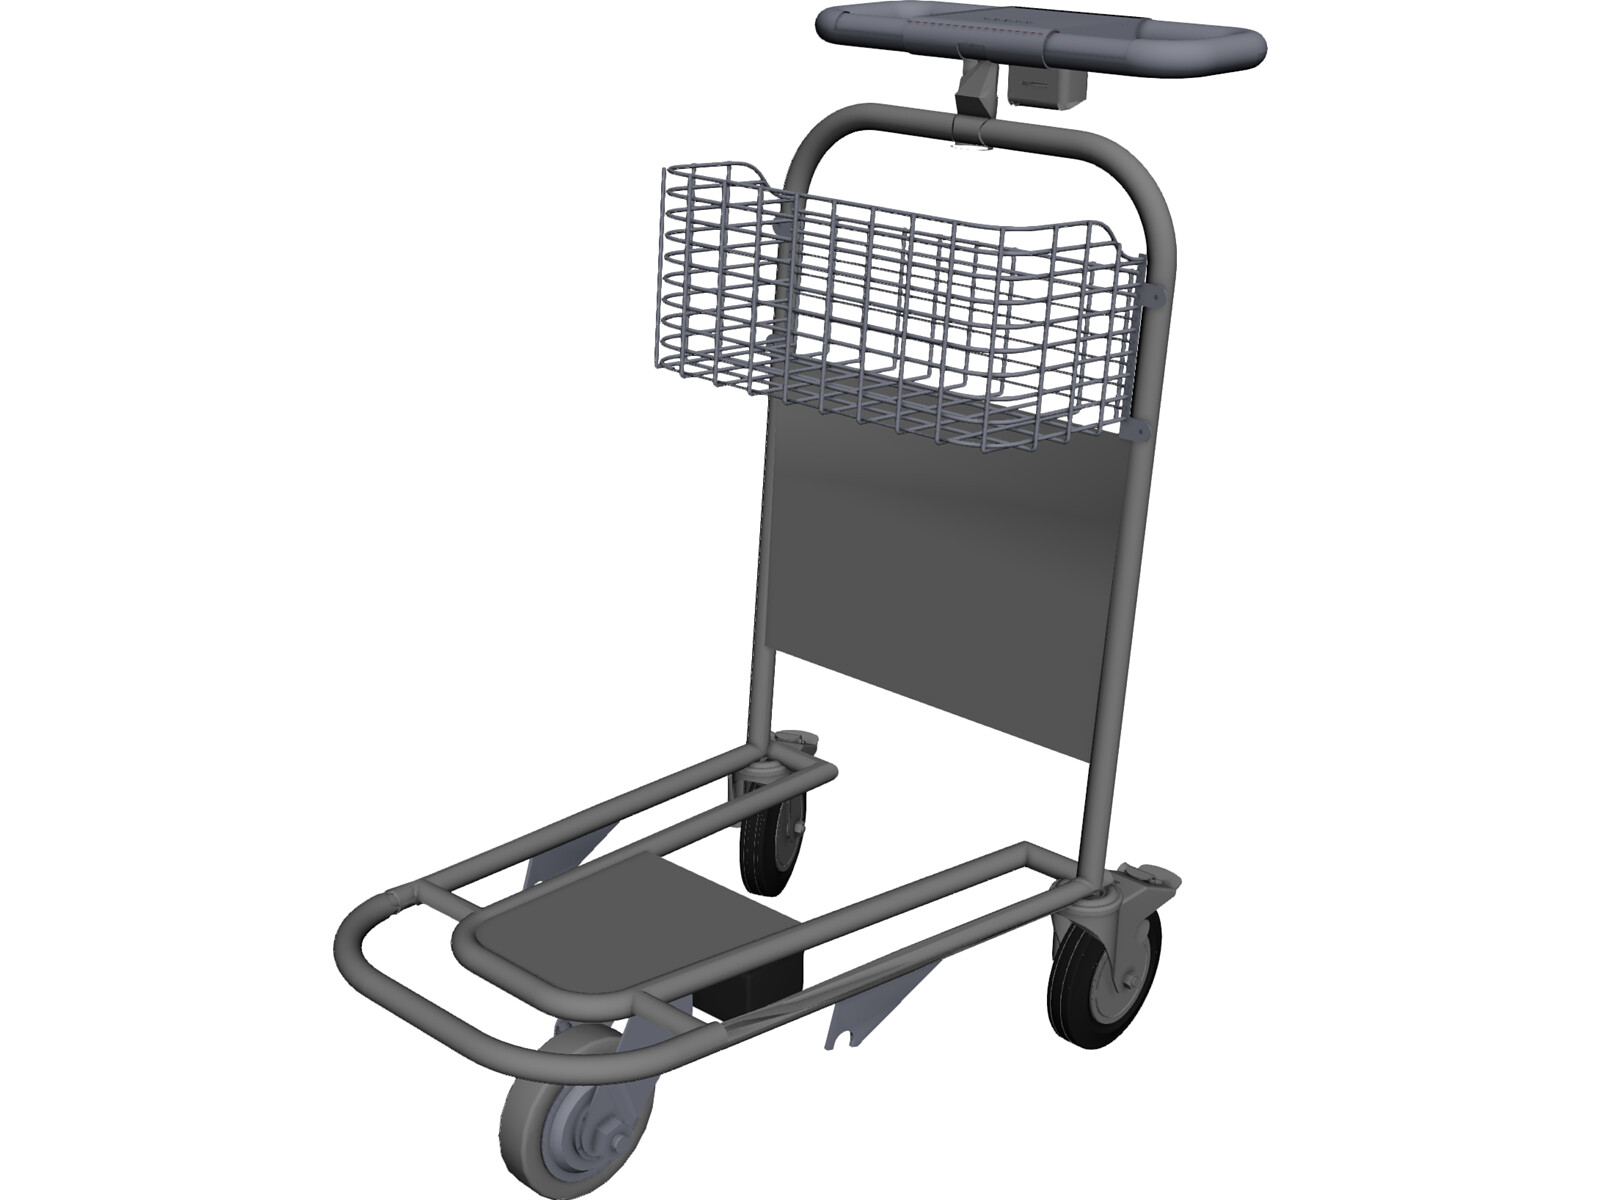 Airport Trolley 3D CAD Model